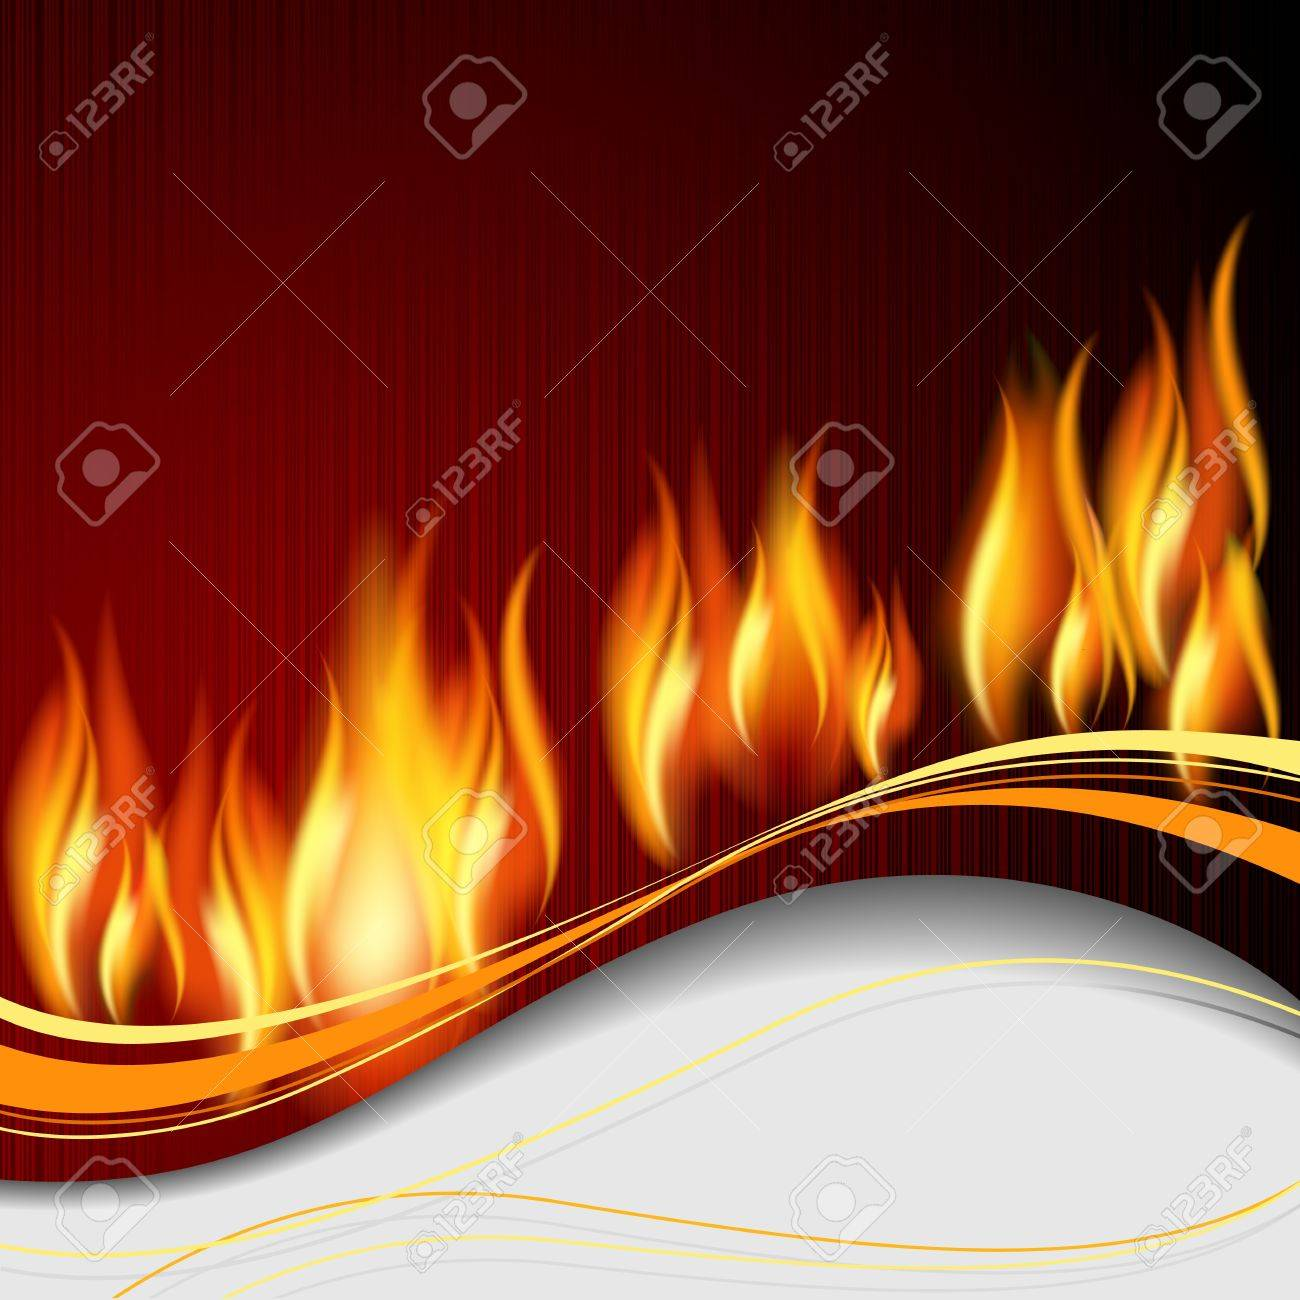 Background with flame and white wave. Stock Vector - 11218743